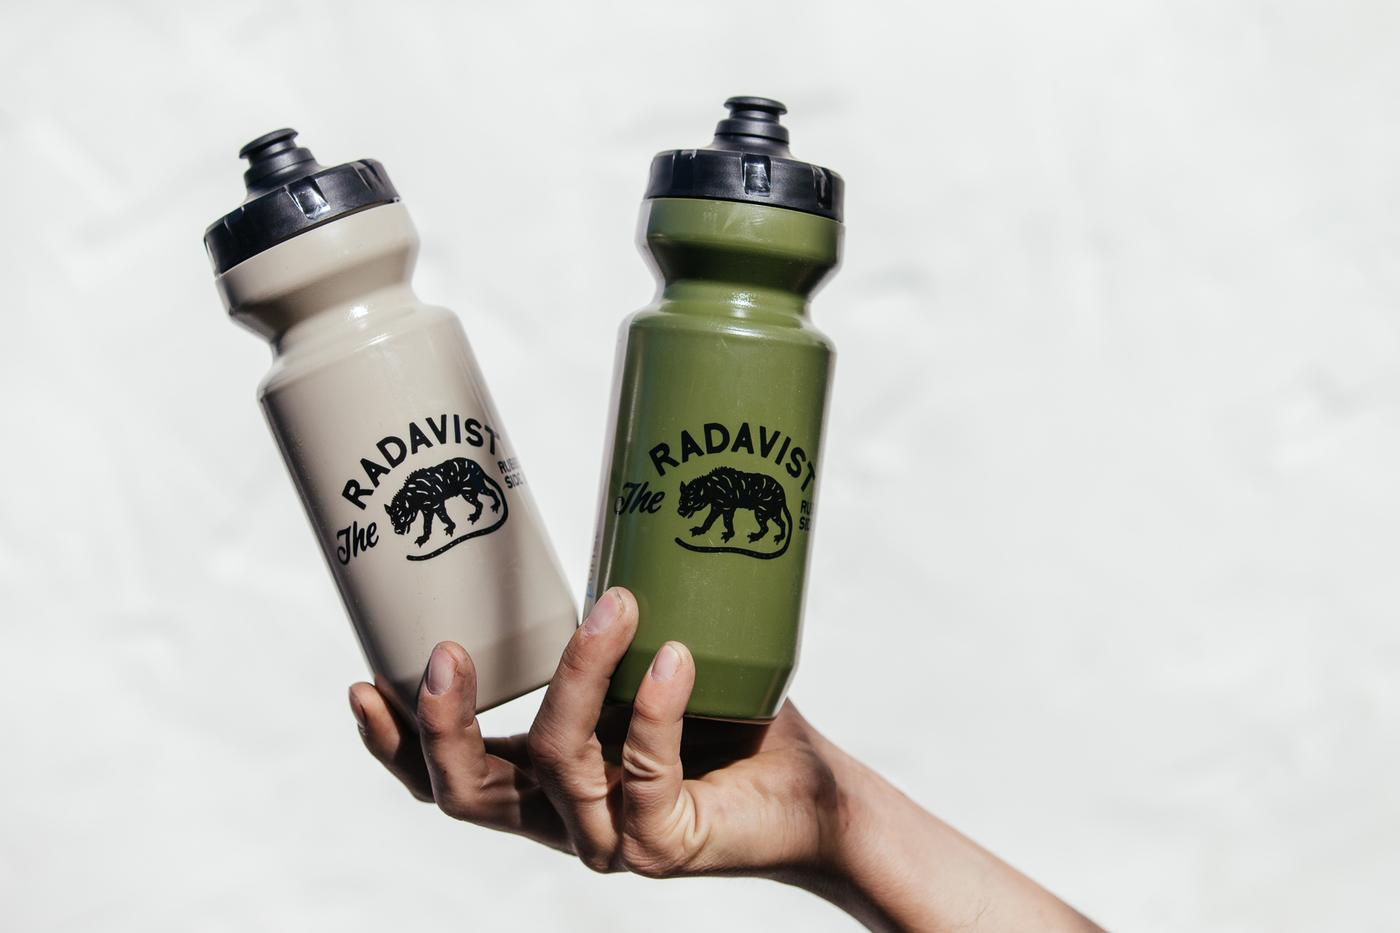 SOLD OUT AGAIN! Olive Drab and Desert Tan Radavist Bottles